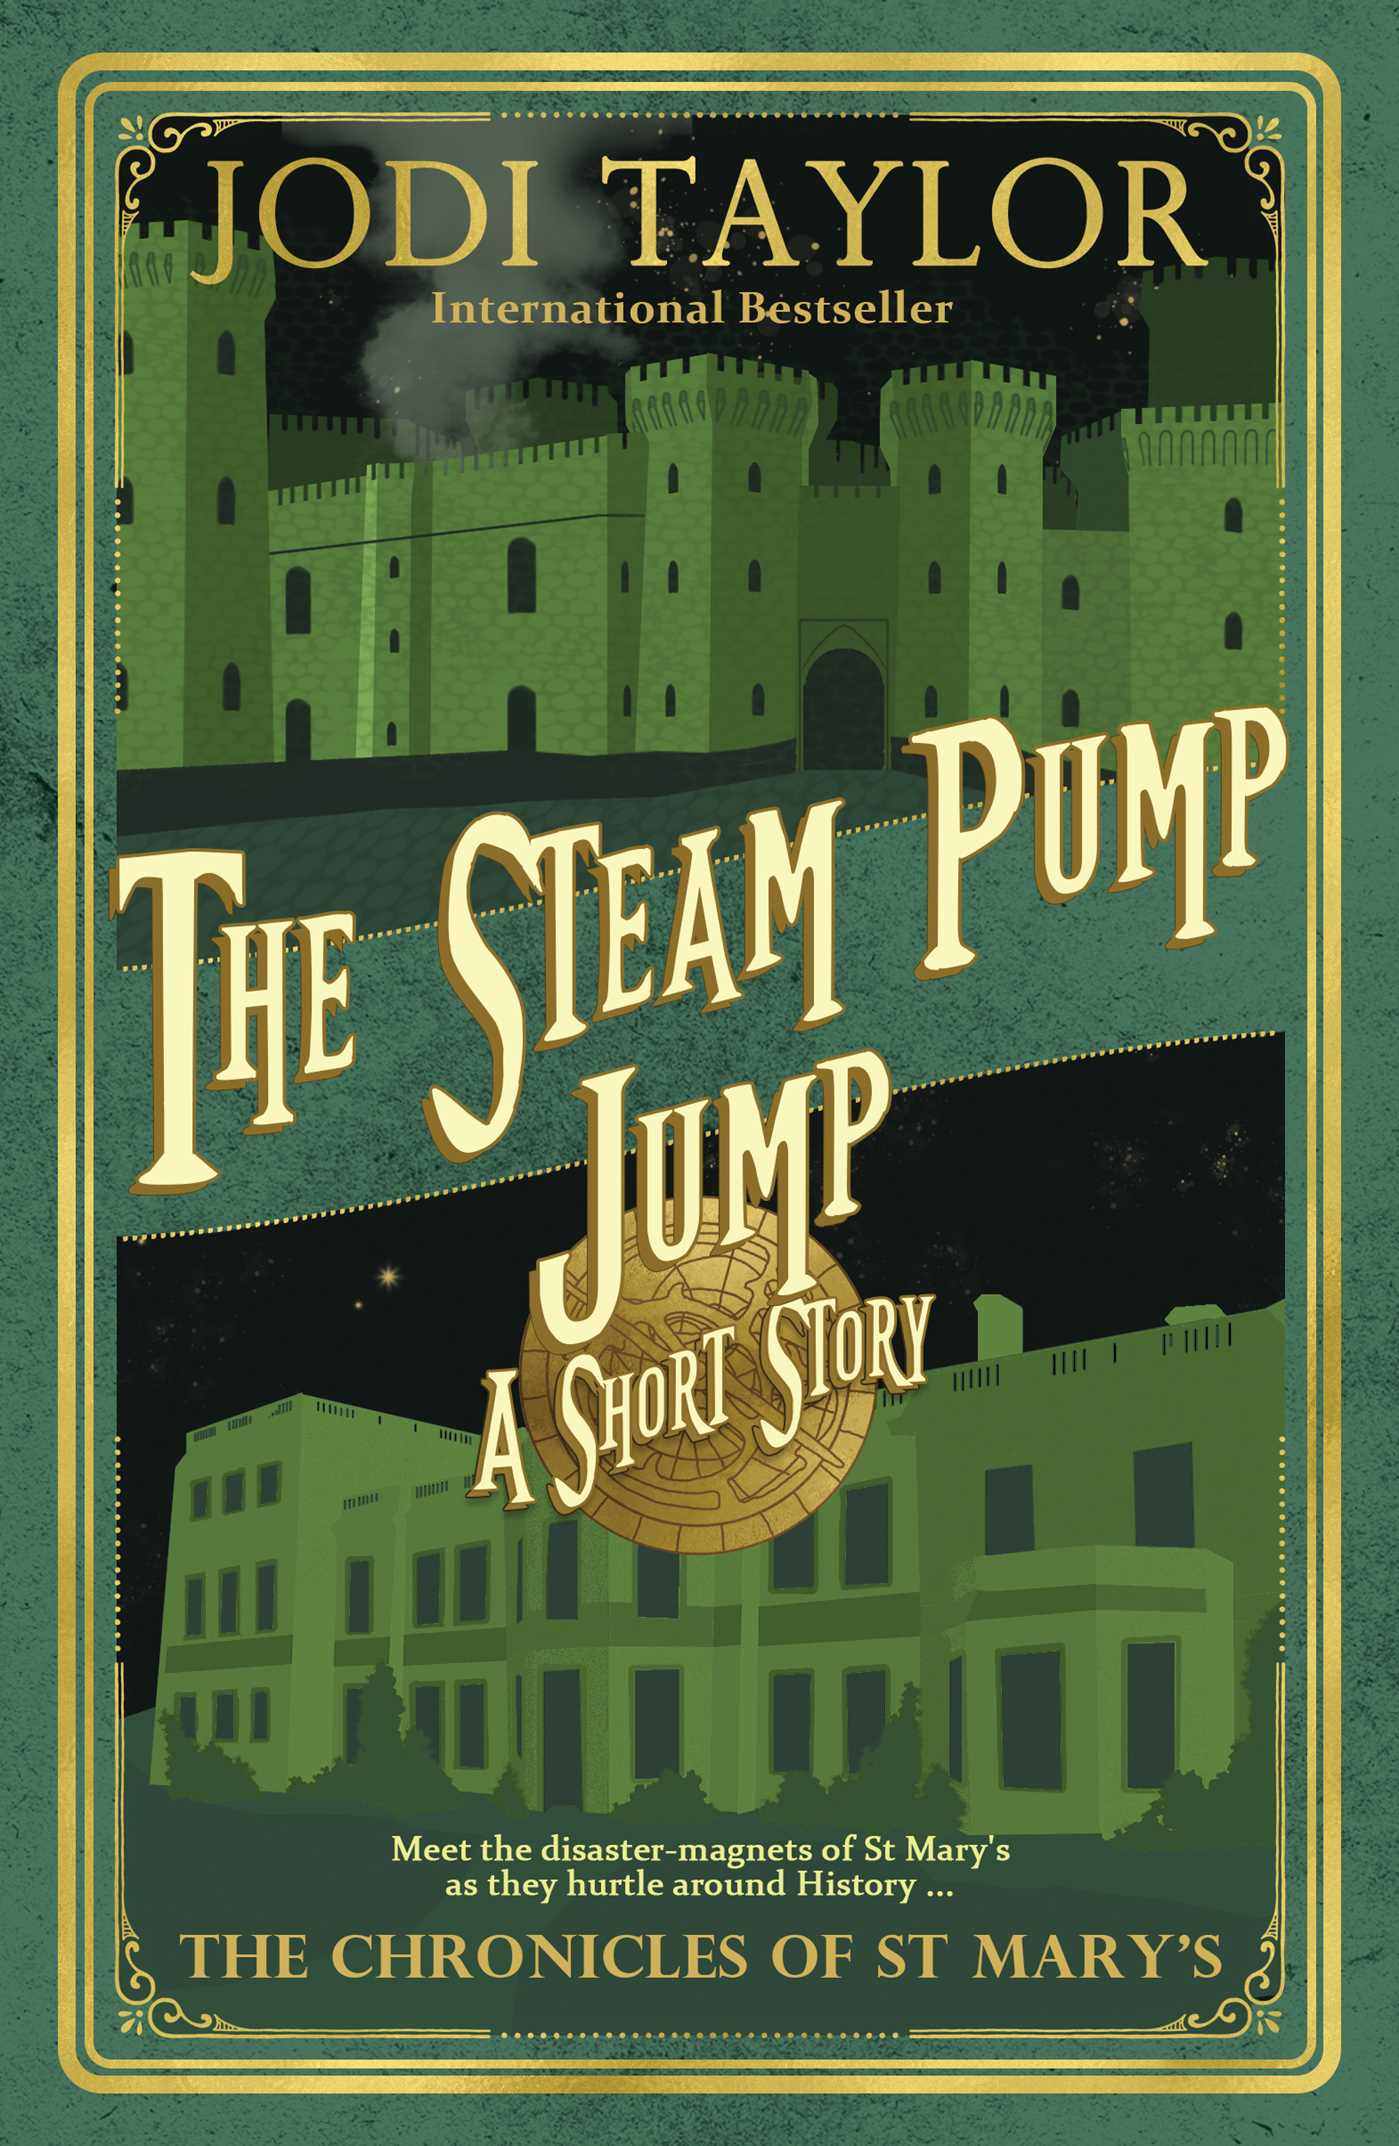 The steam pump jump 9781635969344 hr